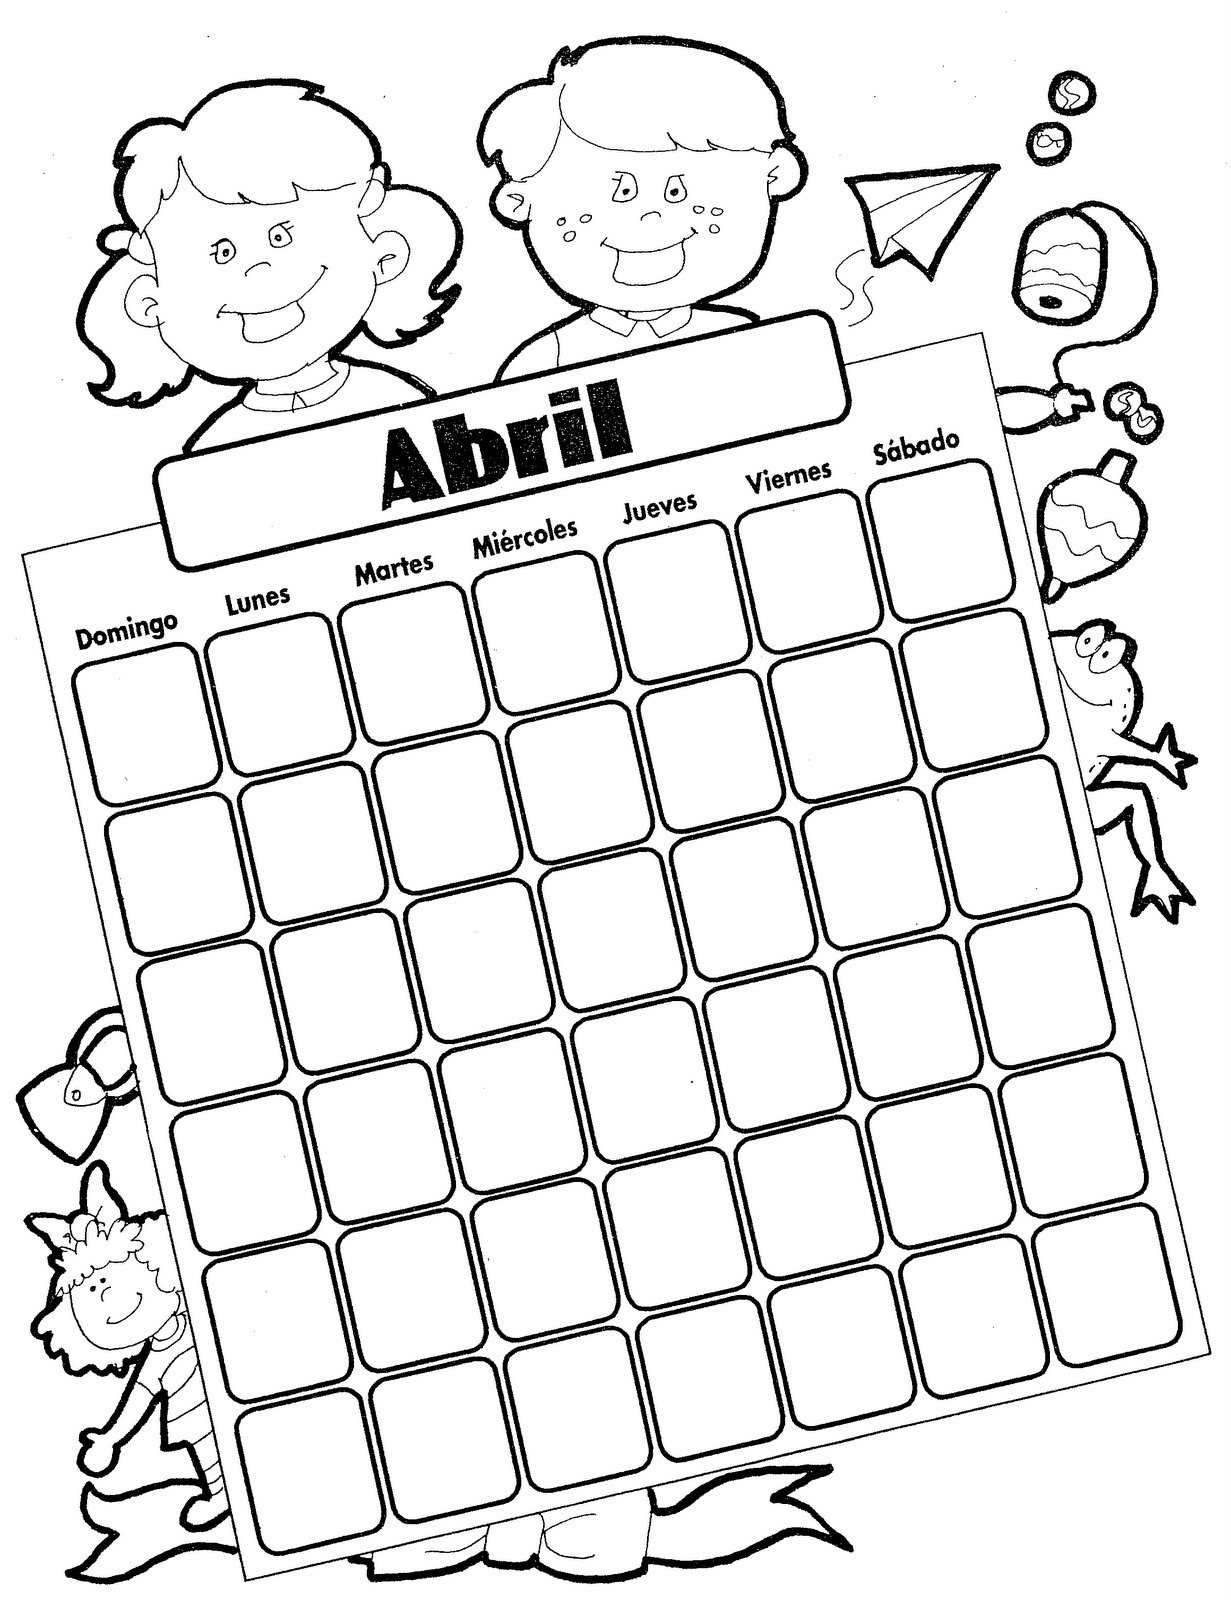 dna coloring pages - photo#30